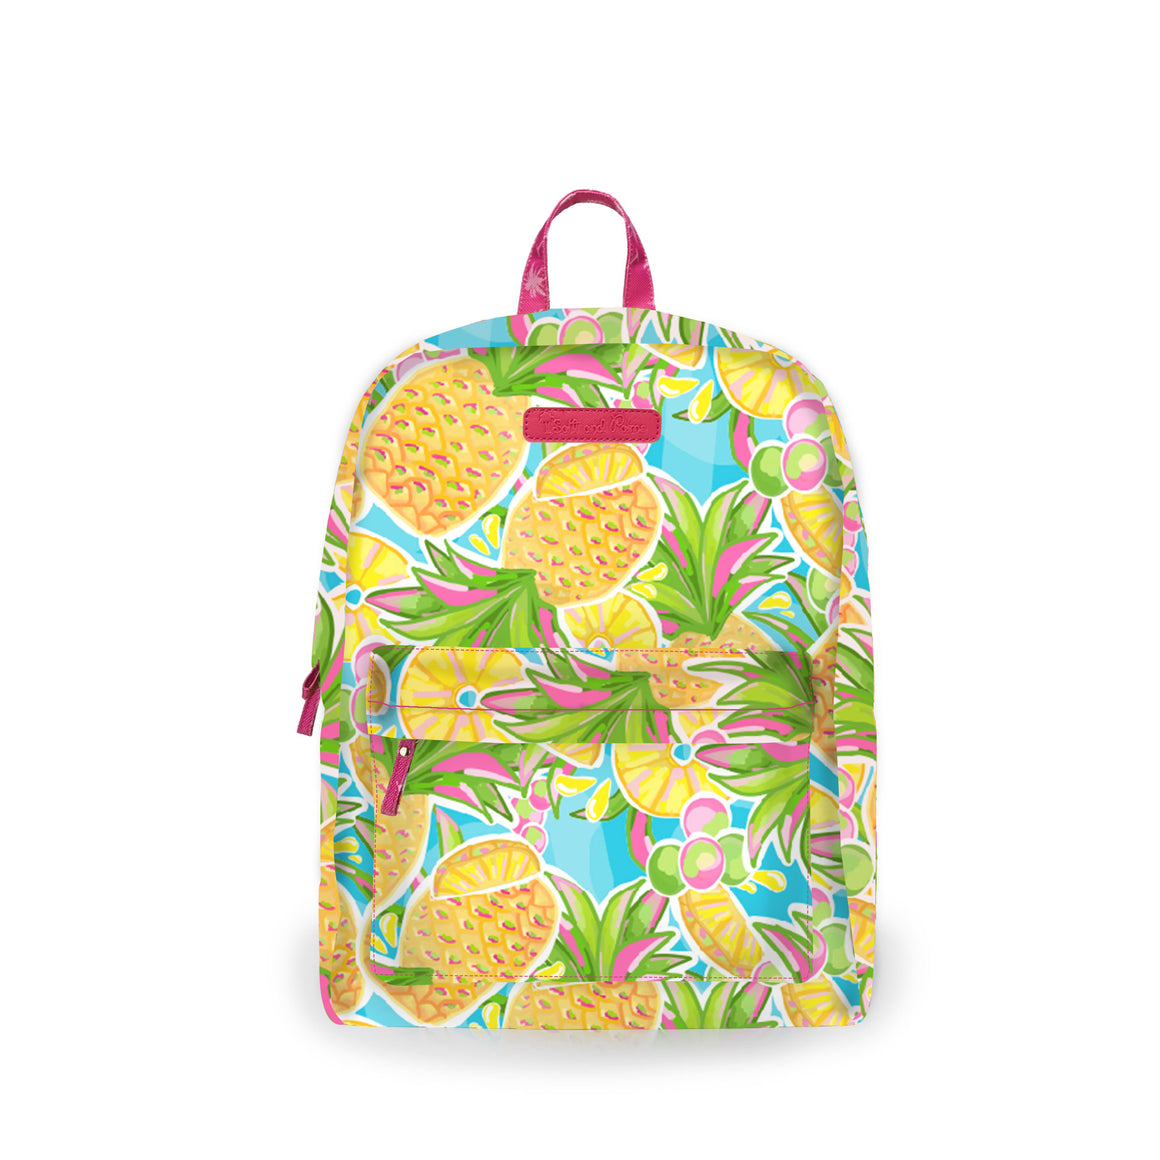 Salt & Palms Backpack - Pineapples